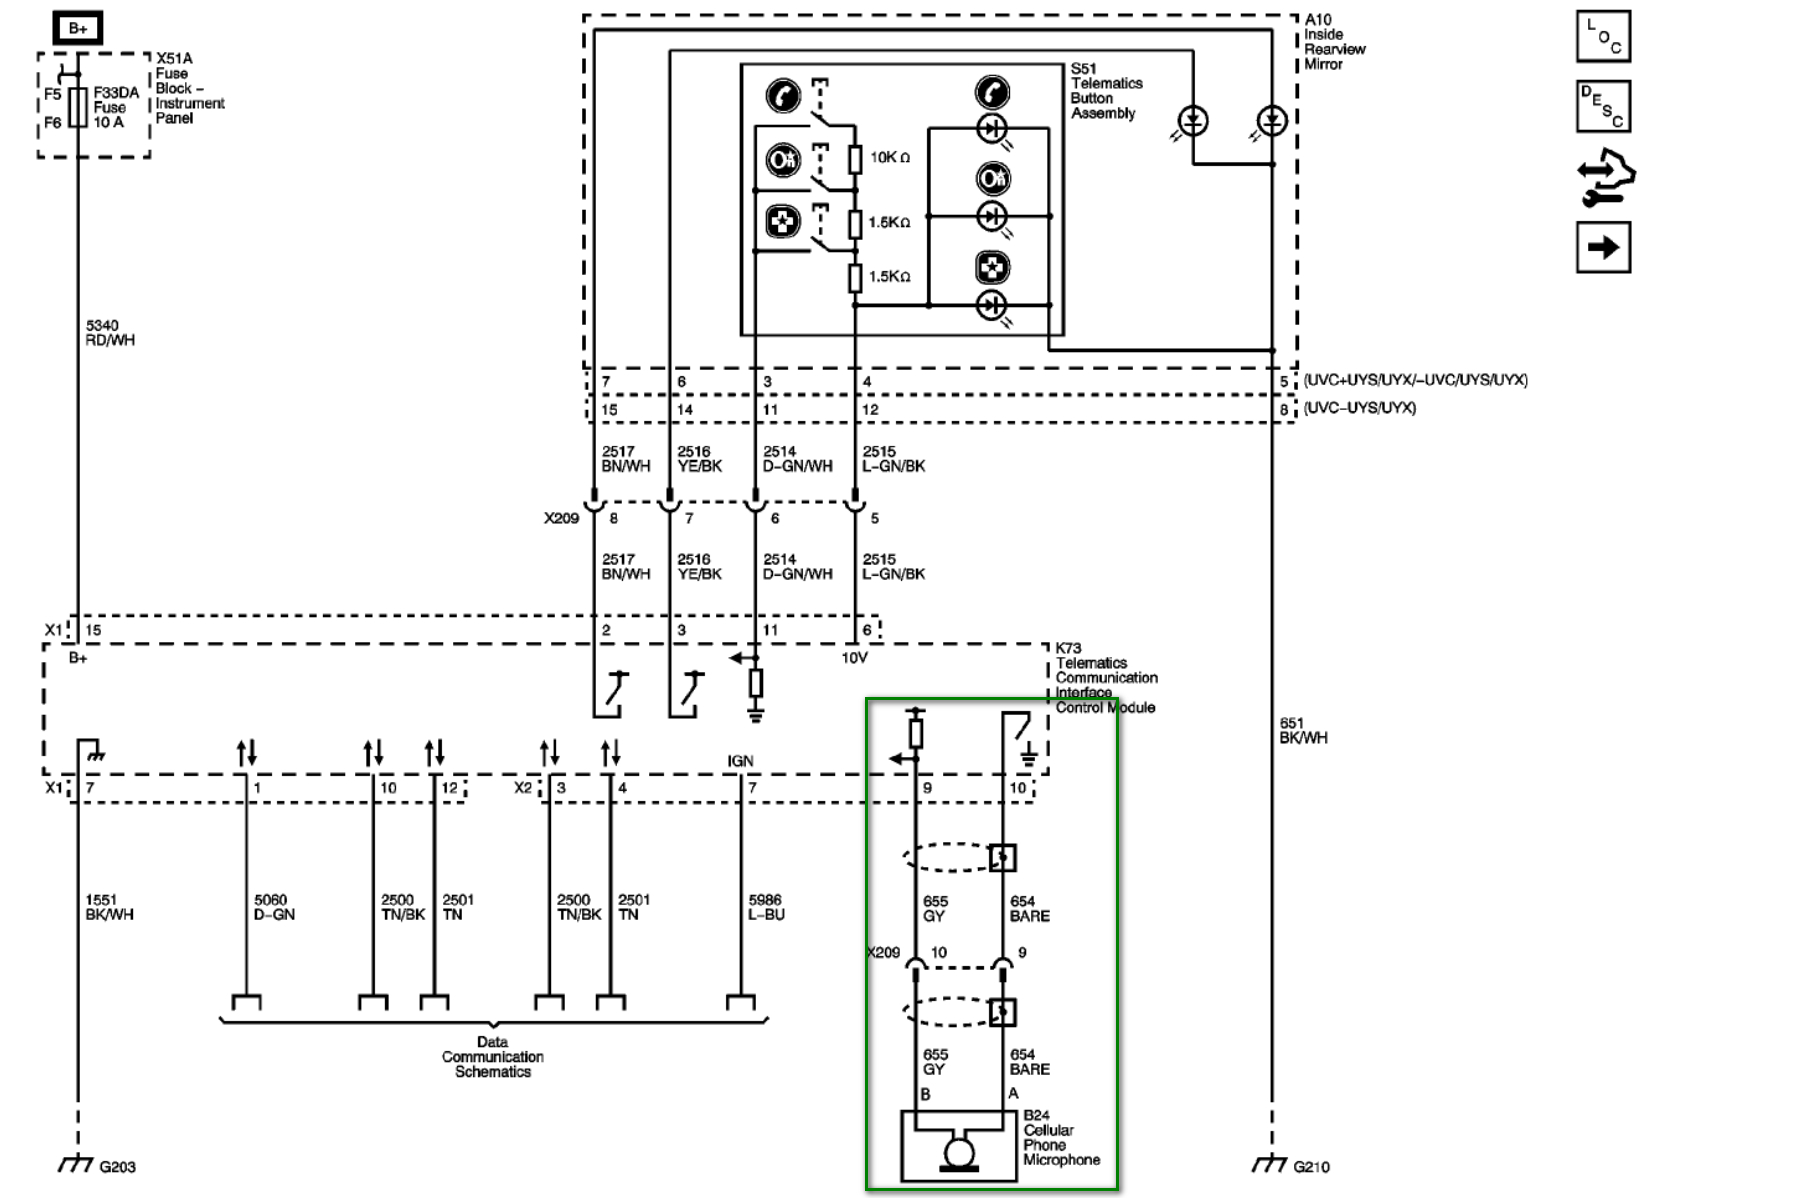 2011 Gmc Sierra Wiring Diagram | Wiring Diagram - Wiring Diagram For Trailer Hook Up